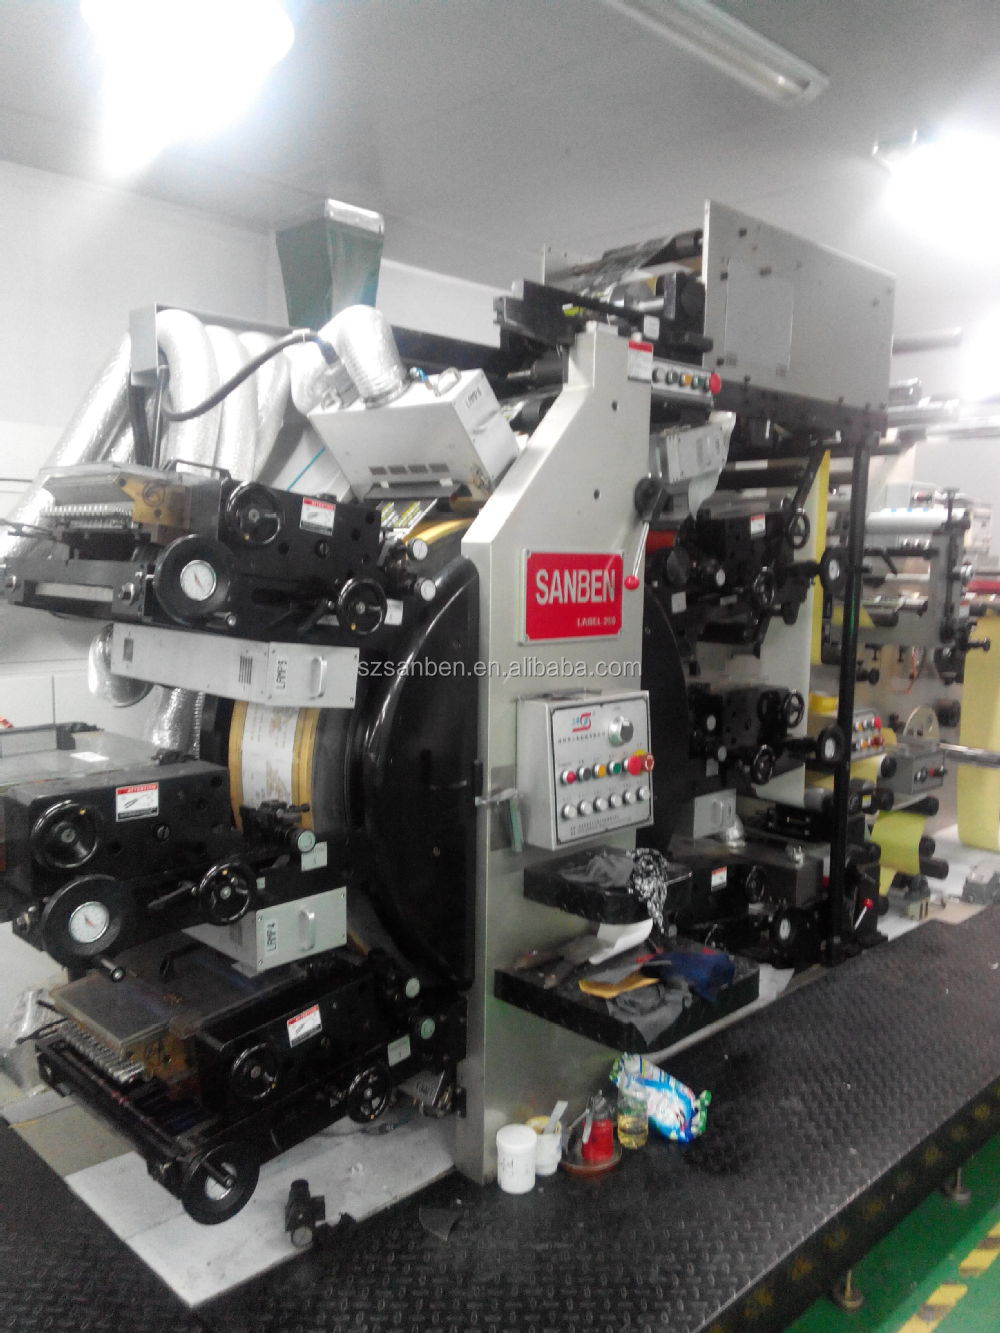 sbl-300) Letterpress Label Printing Machine,Automatic Satallite ...